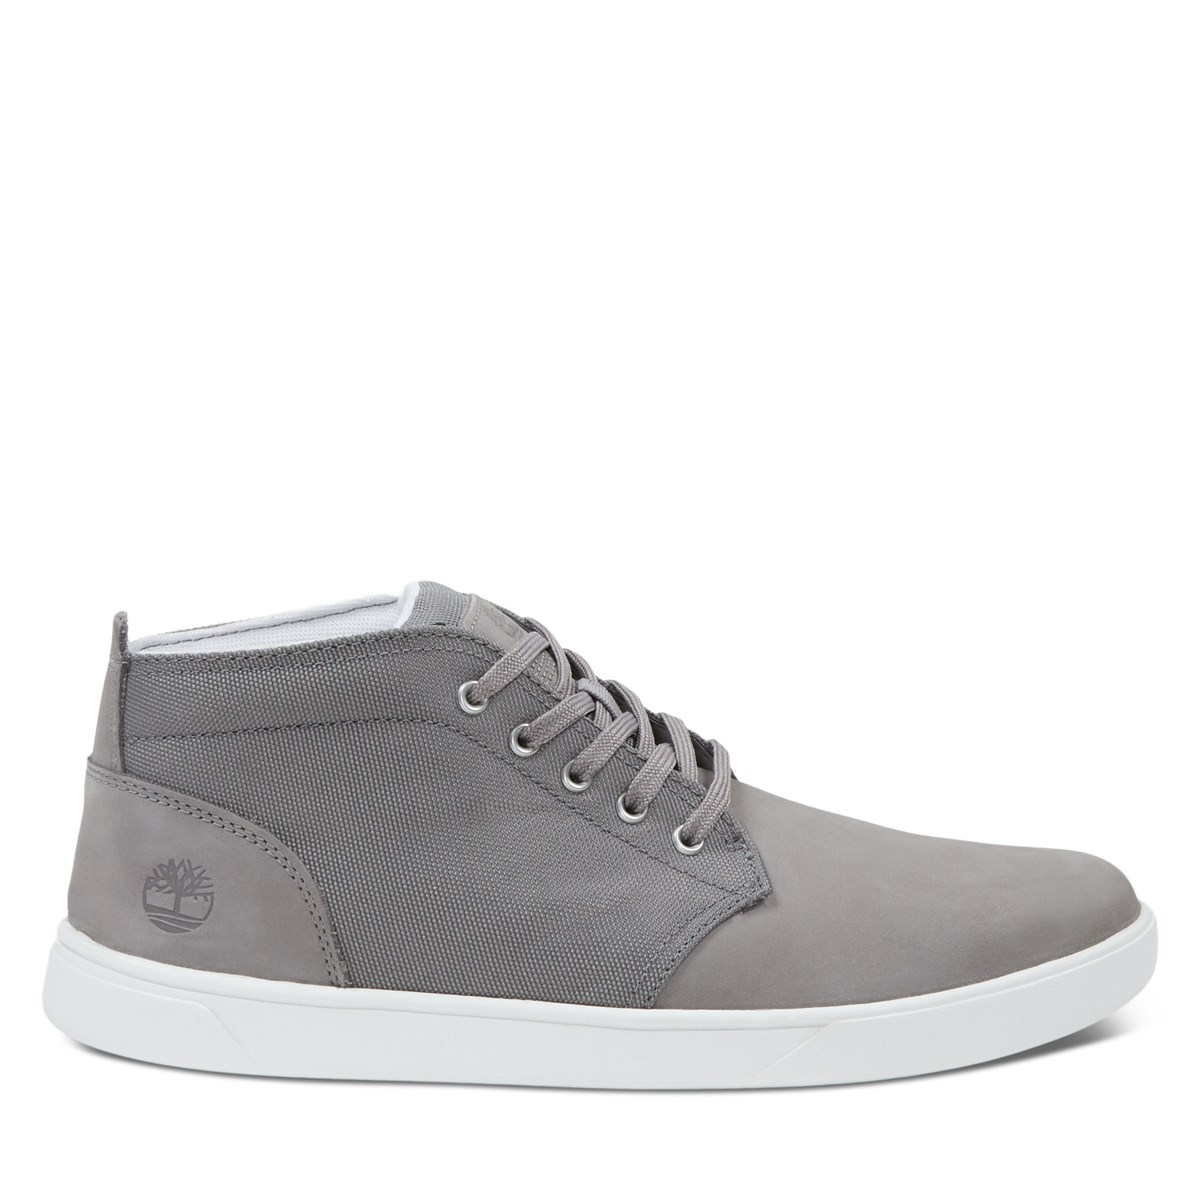 Men's Groveton Chukka Shoes in Grey